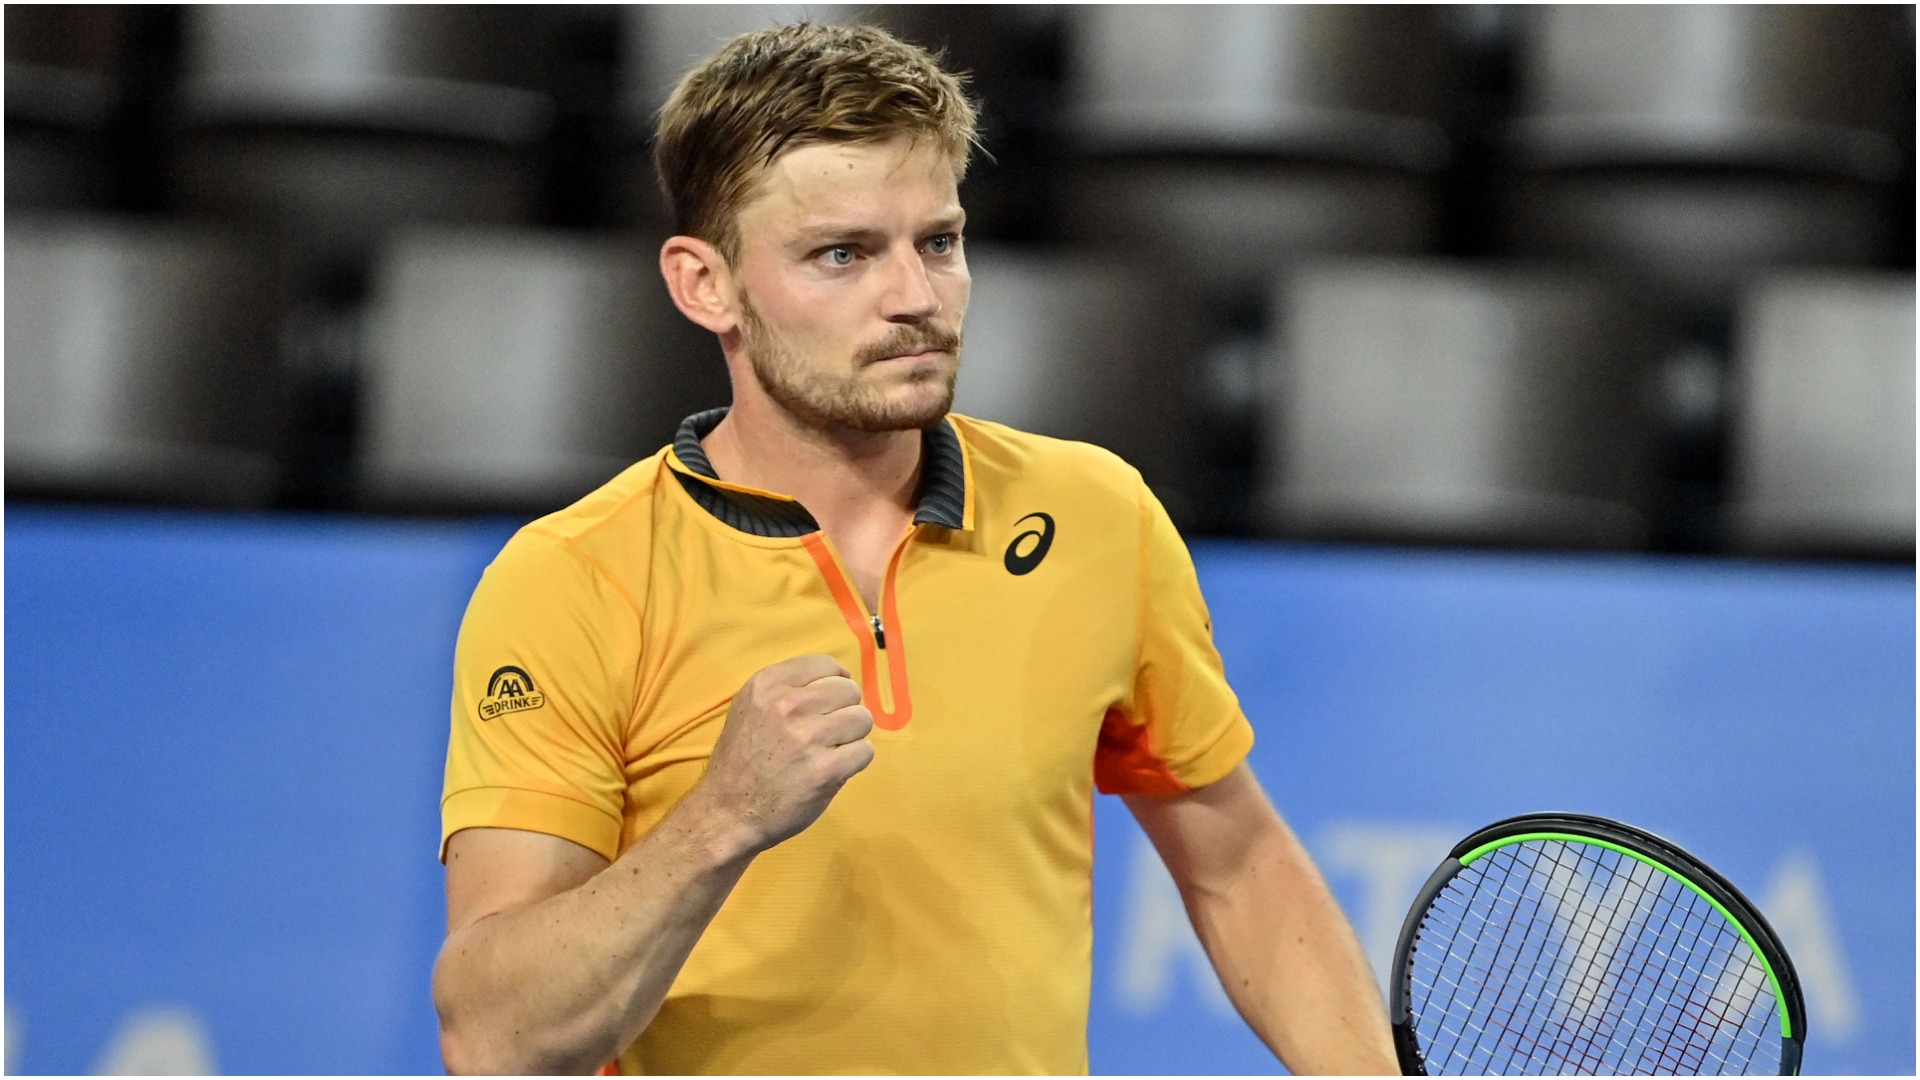 Having come through a deciding set to reach the final, David Goffin could win his first title on the ATP Tour since 2017.